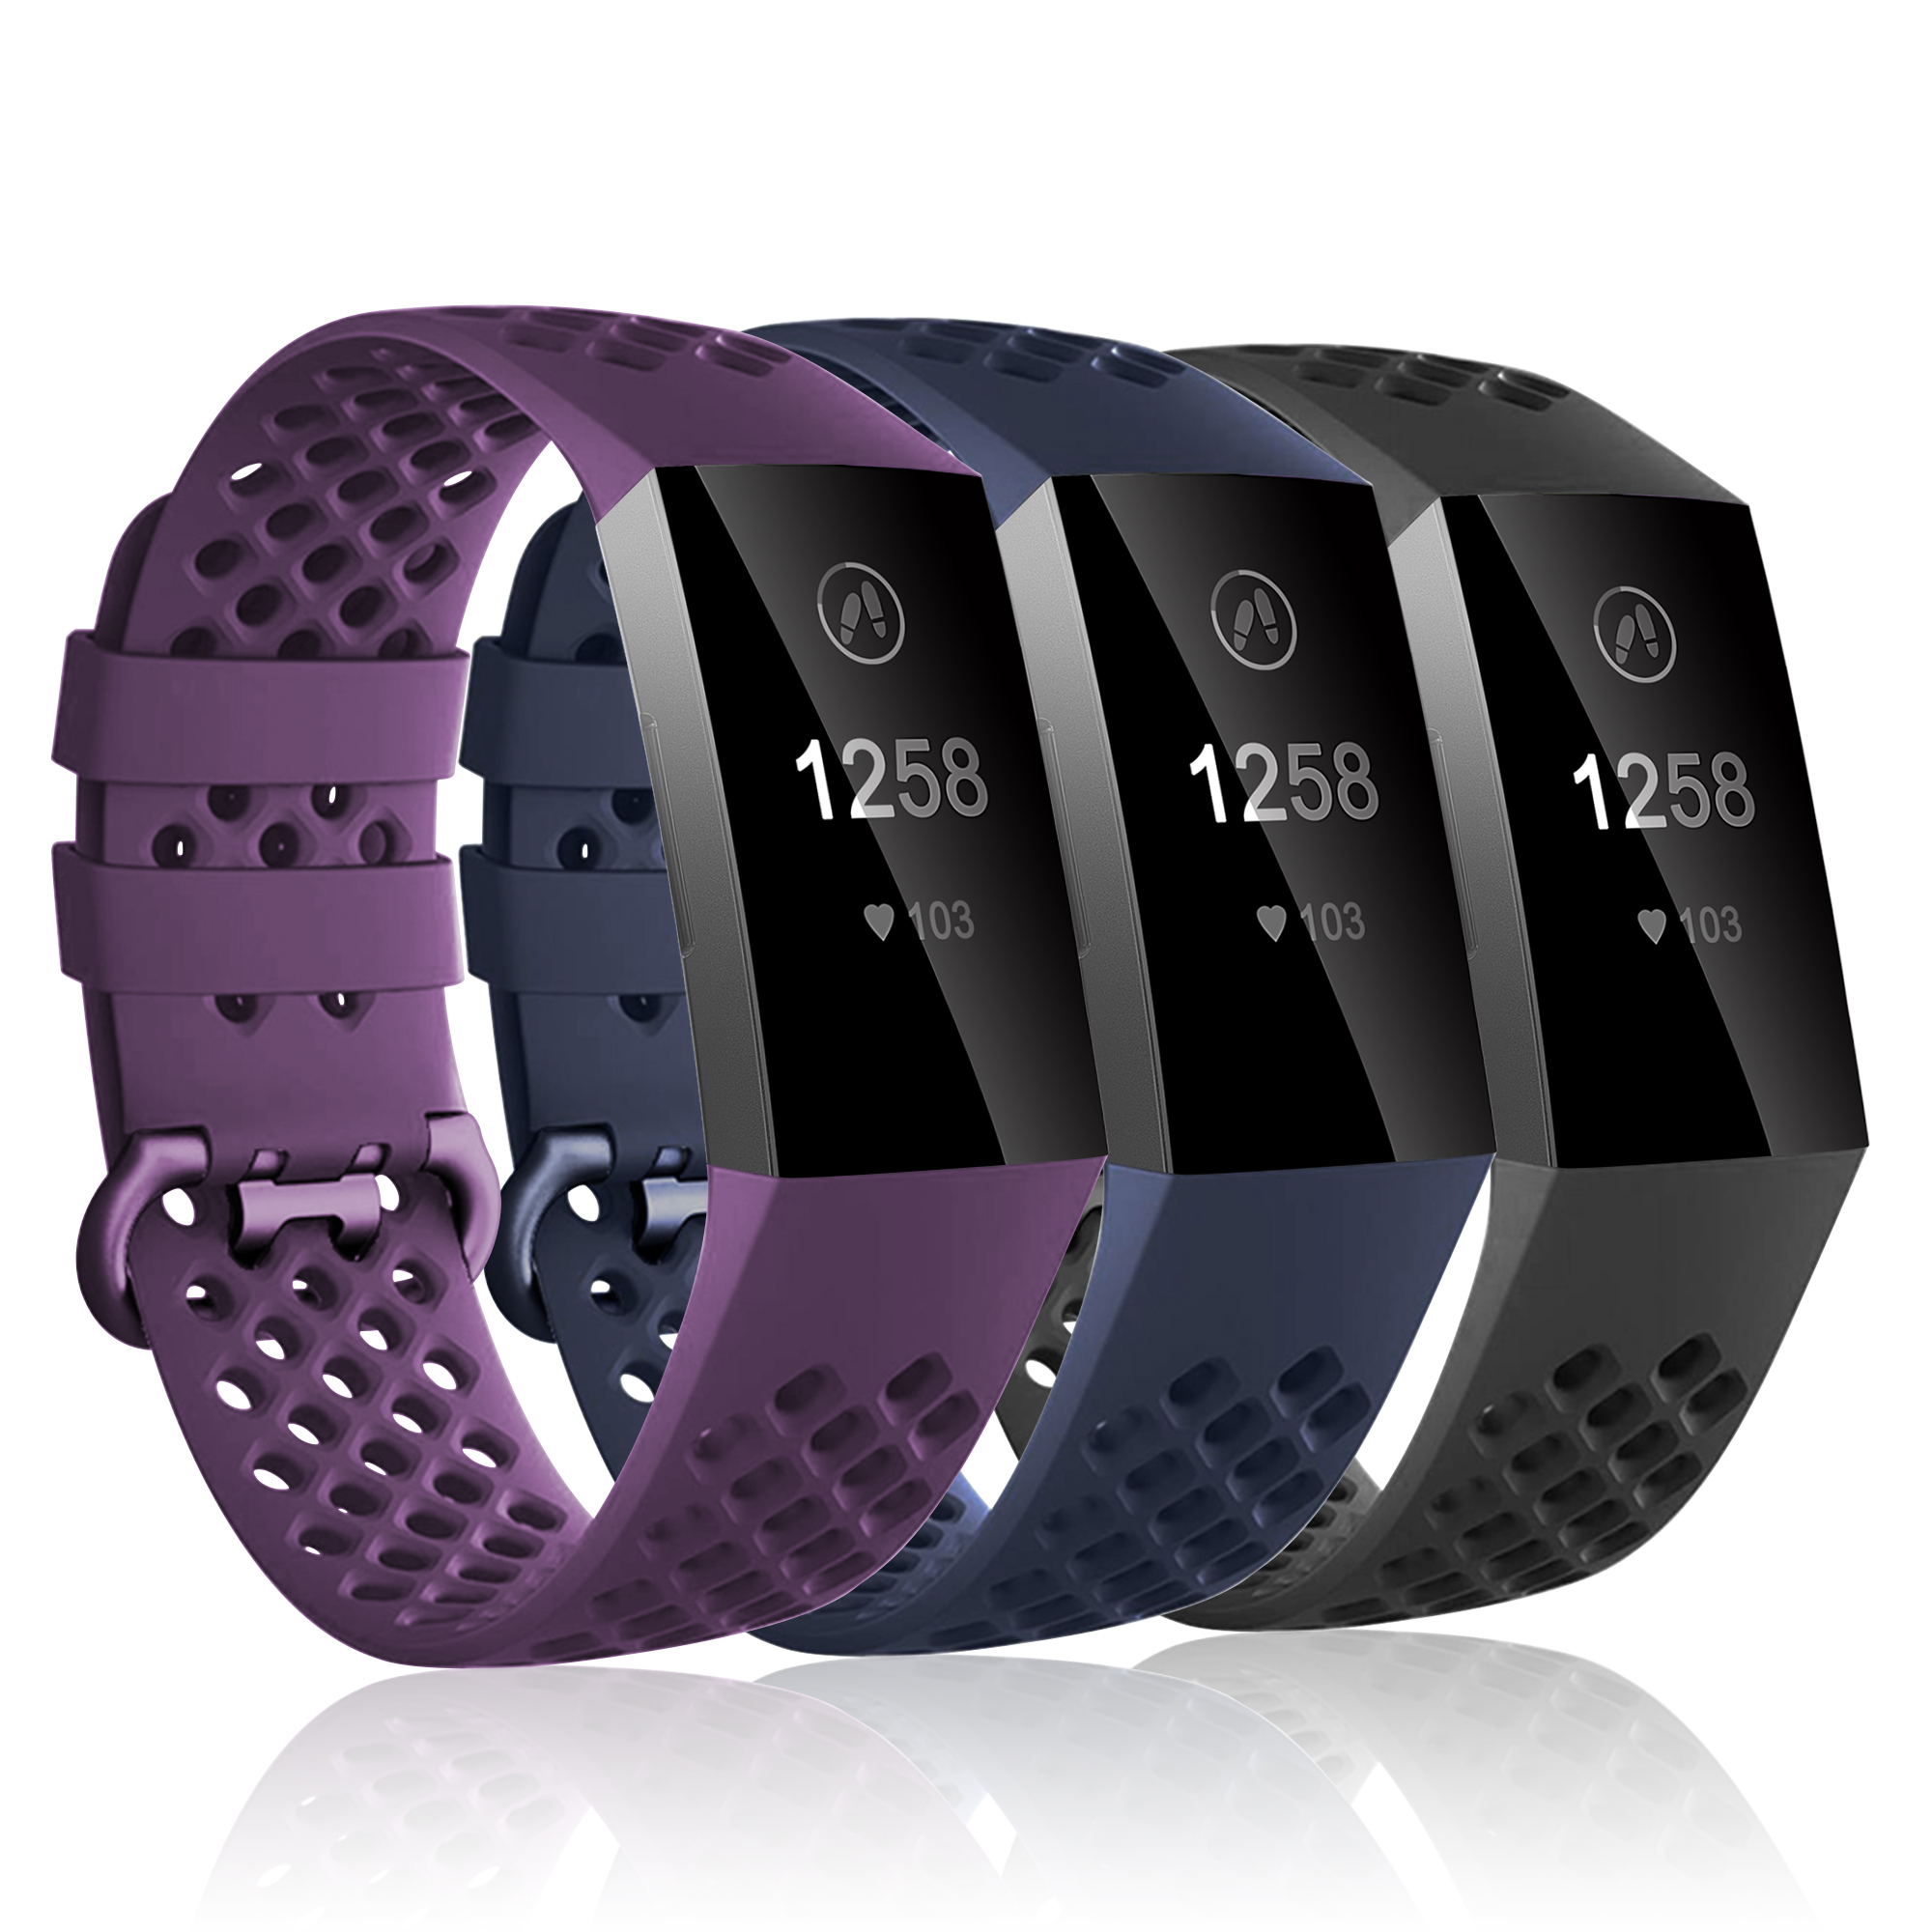 Luxmo Replacement Bands Compatible with Fitbit Charge 3 and Fitbit Charge 3 SE(3Pack), Sport Replacement Wristbands with Secure Metal Buckle for Fitbit Charge 3 and Fitbit Charge 3 SE(Small)